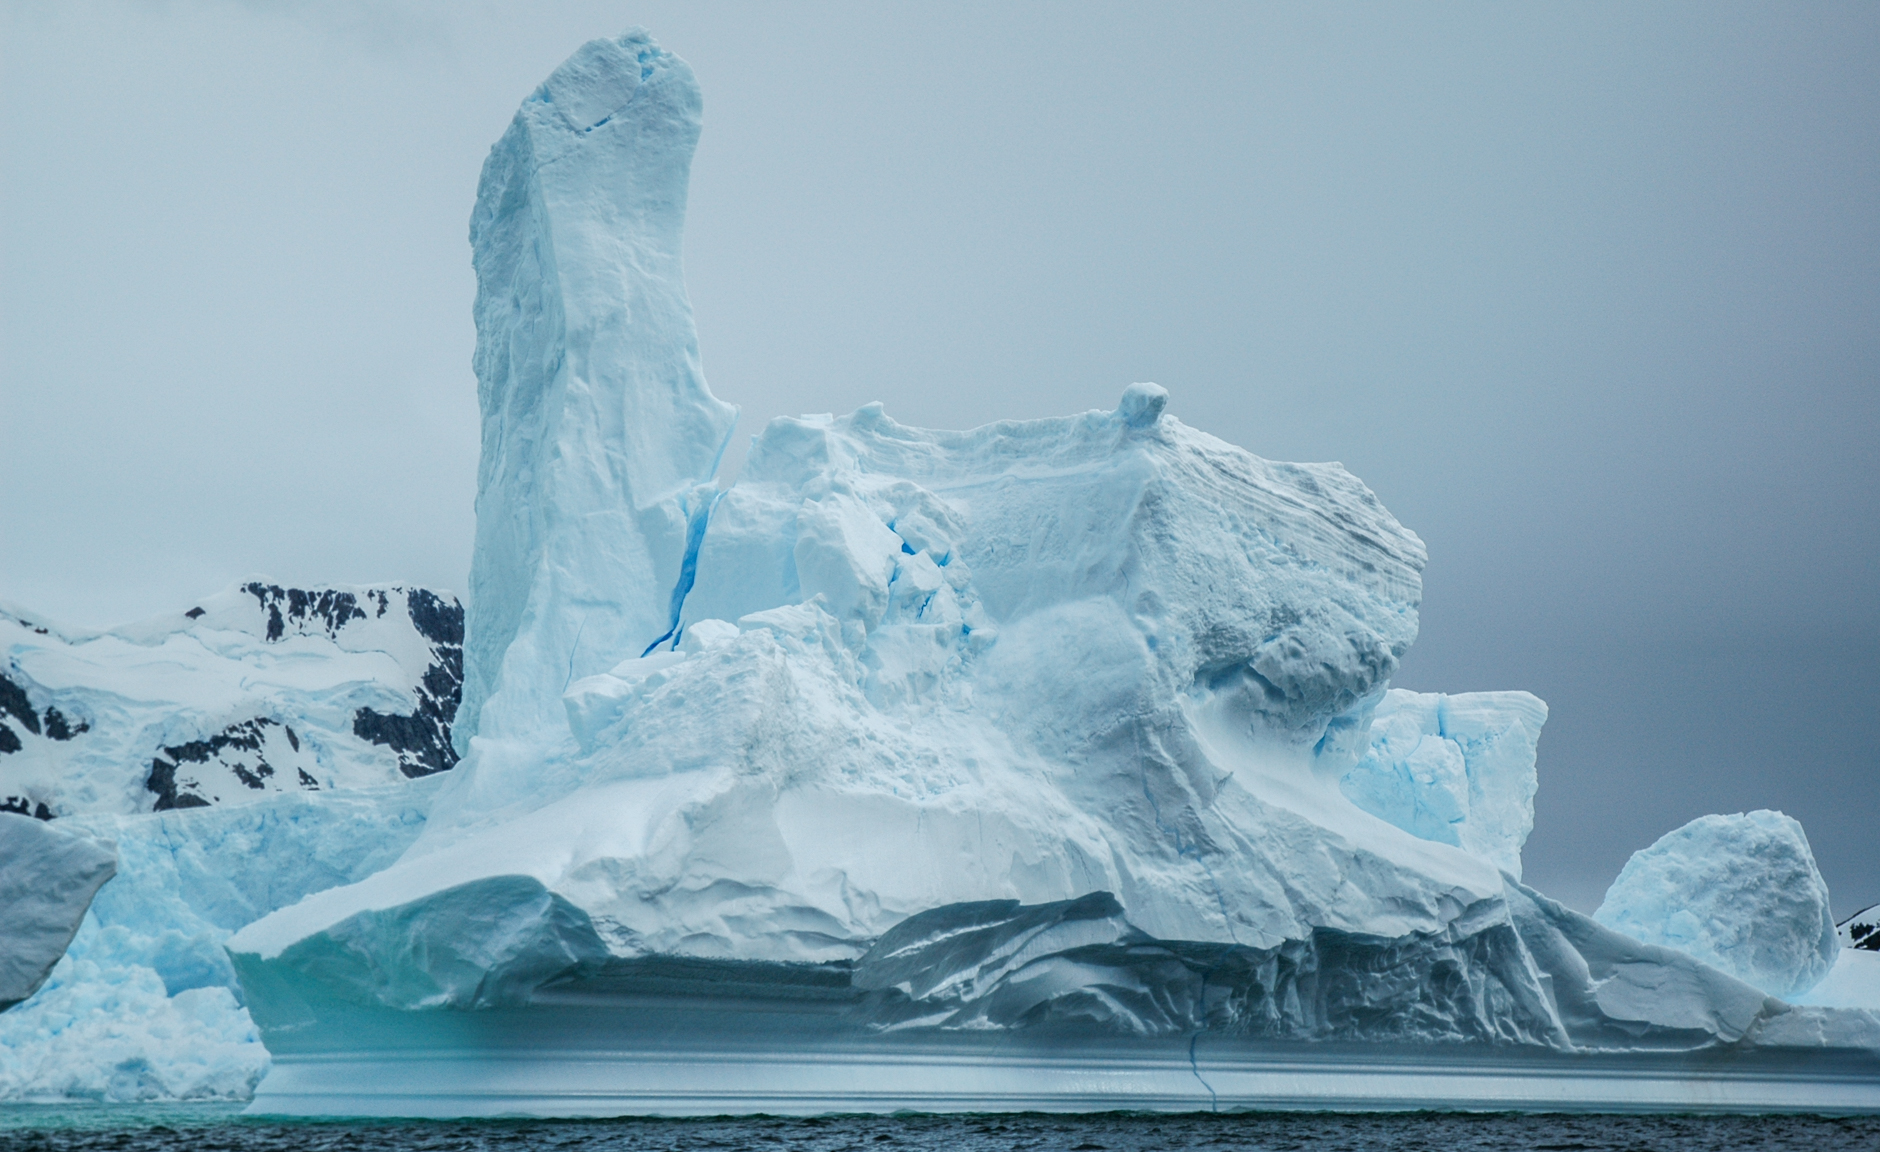 Iceberg near Pleneau Island, Antarctic Peninsula